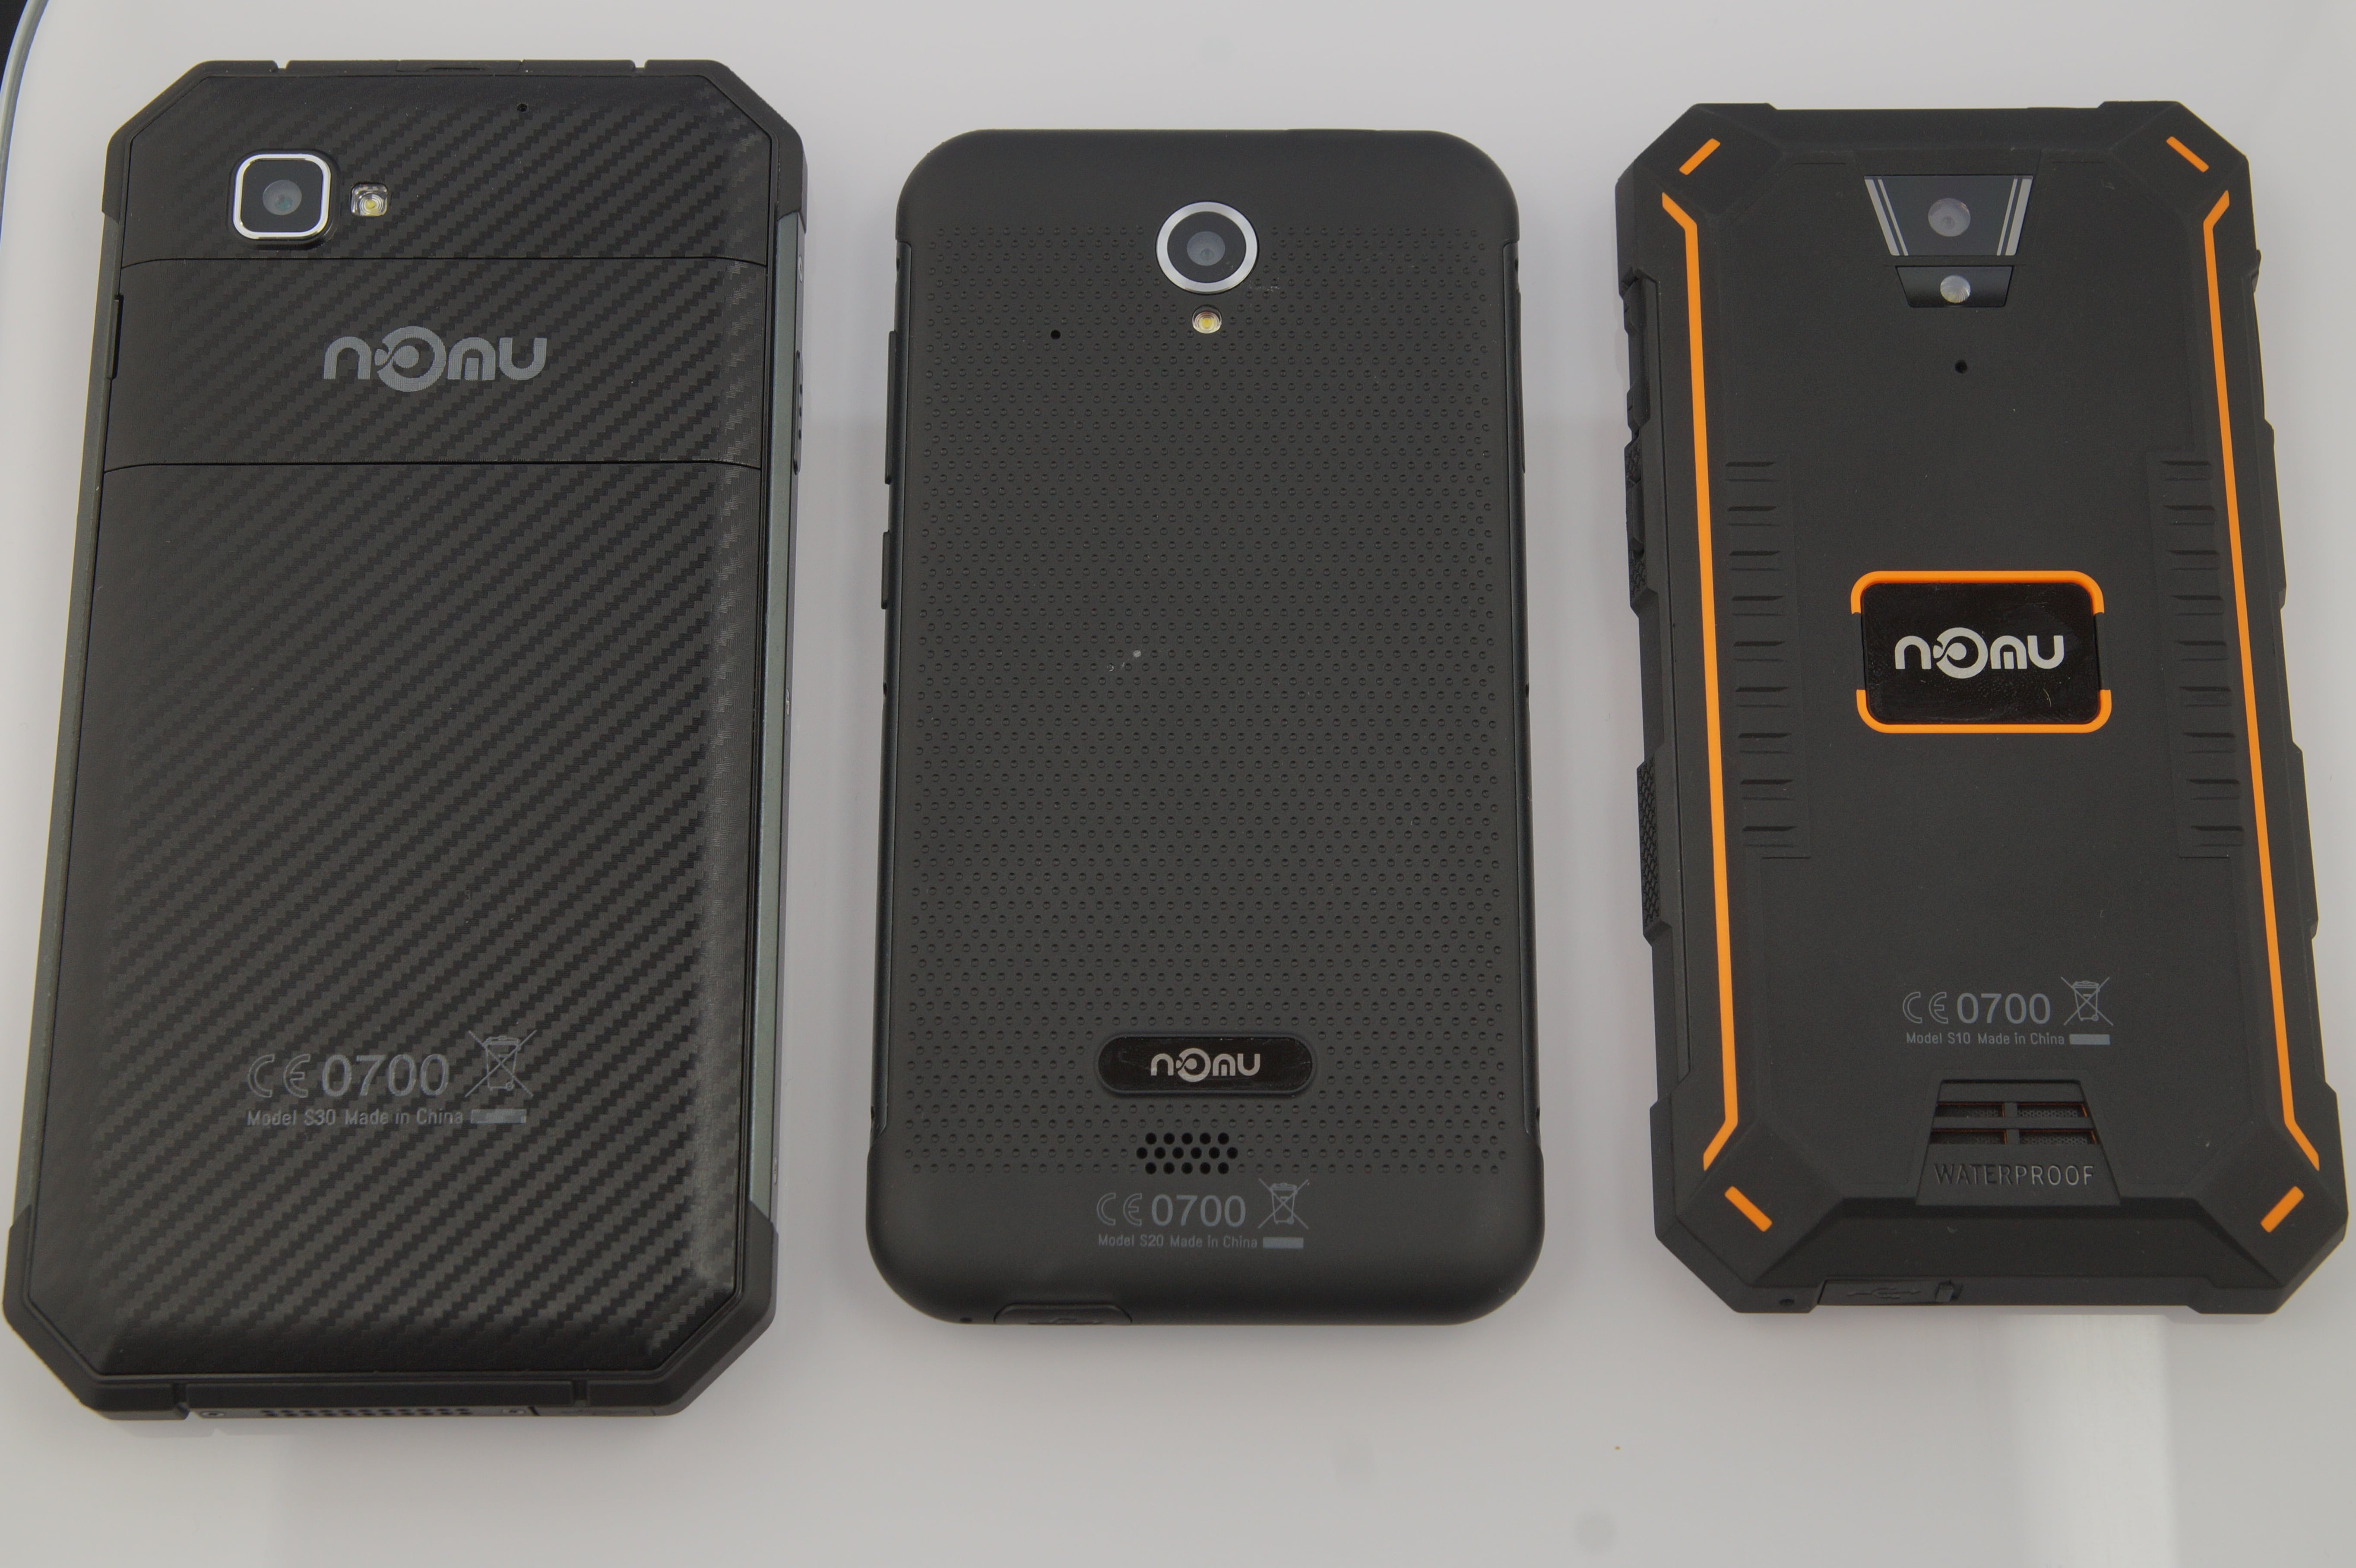 Nomu S10, S20 and S30